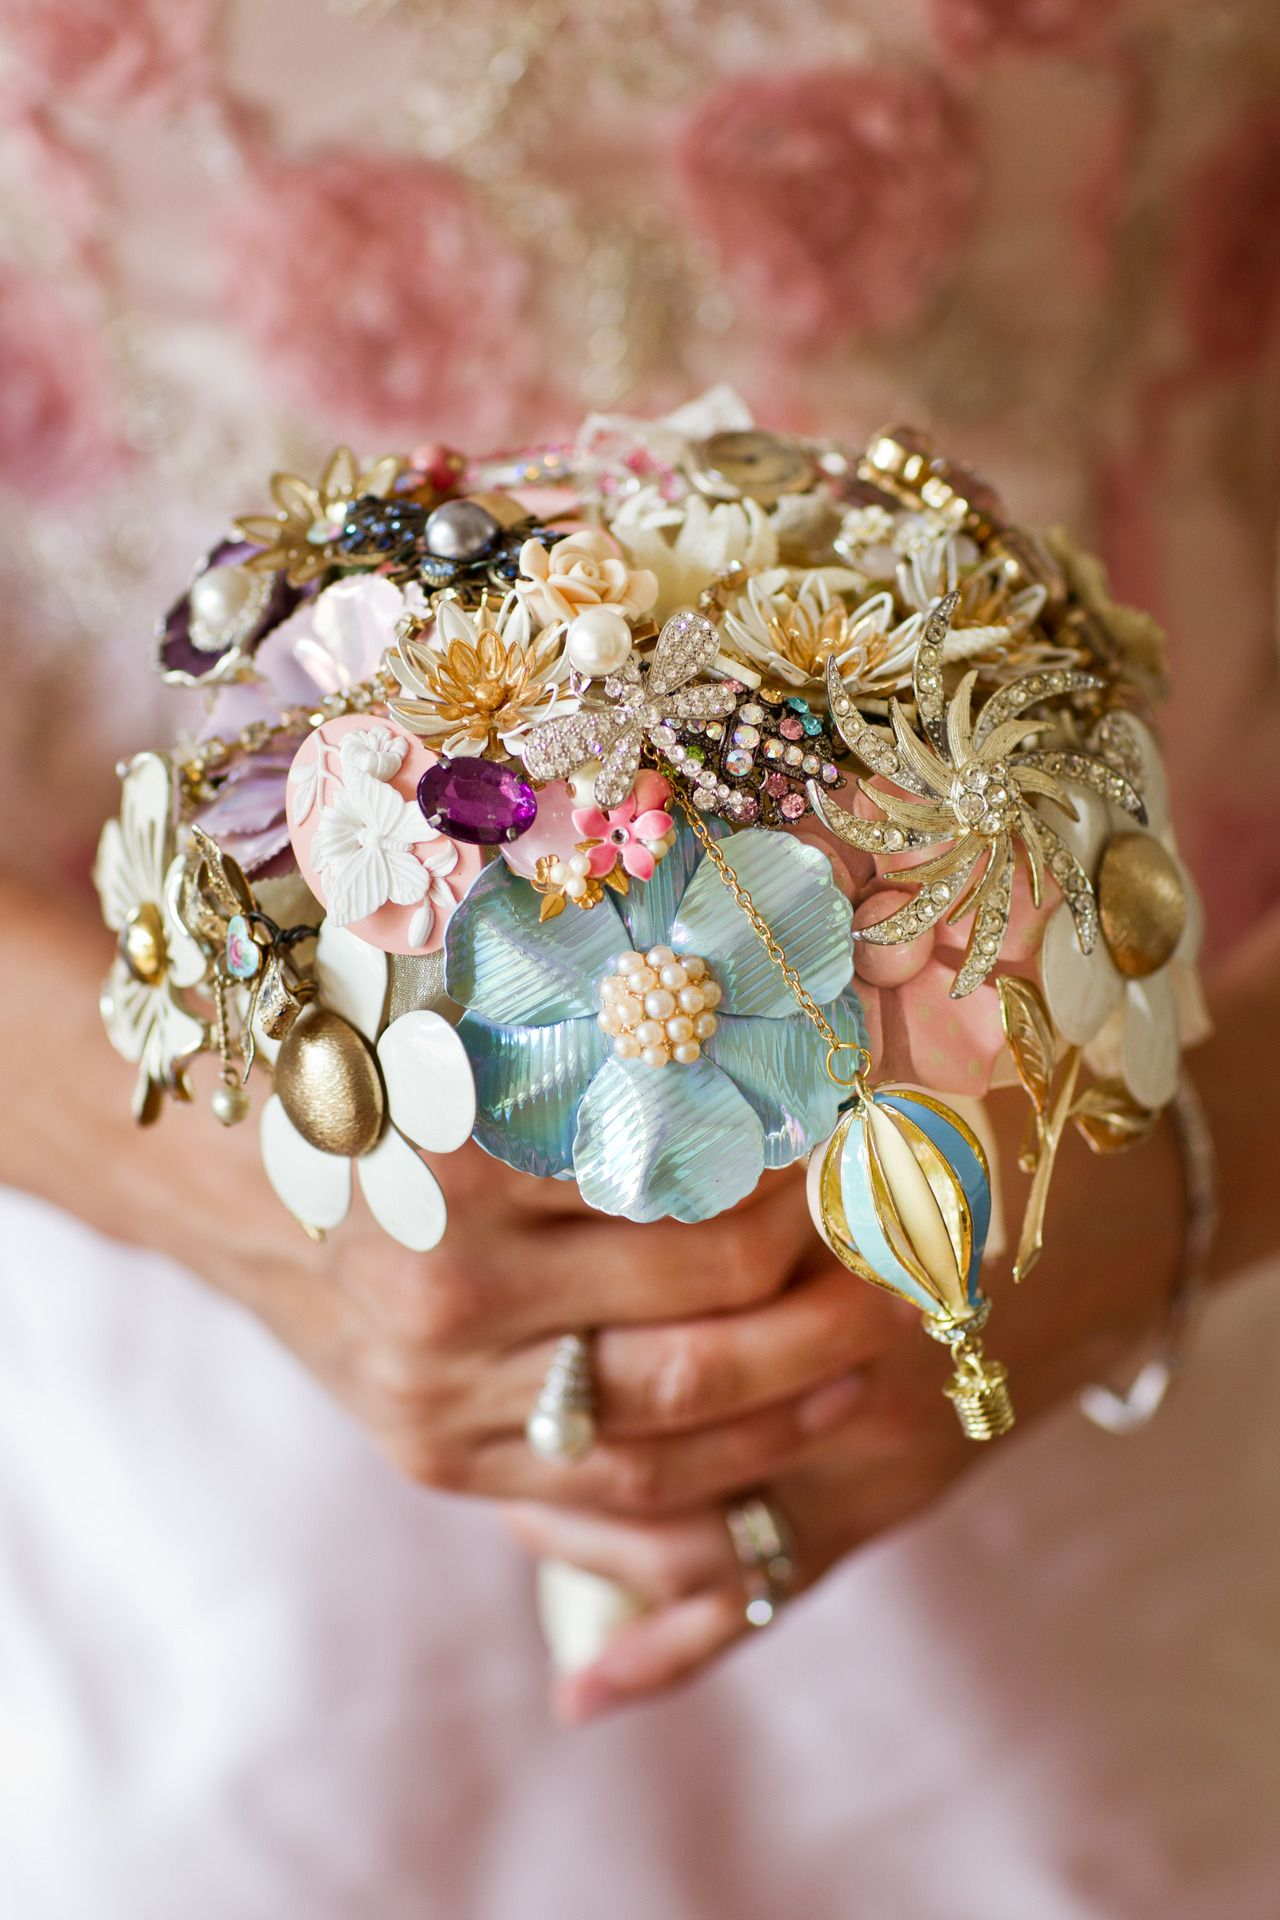 Fake flowers will last forever as a decoration in my house could whileiwaitformywedding via pretty wedding bouquets brooch bouquet with hidden charms of dragonflies and a hot air balloon izmirmasajfo